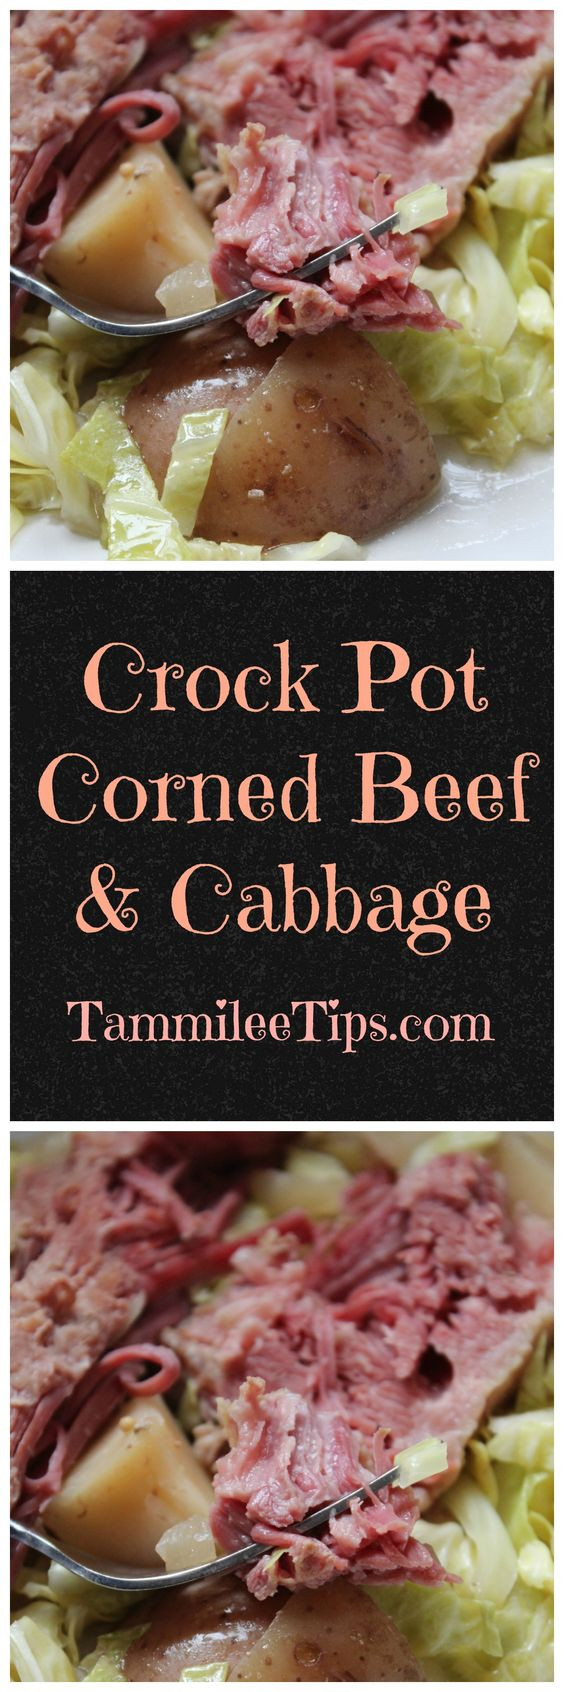 Corned Beef Crock Pot Recipe No Cabbage  Crock Pot Corned Beef and Cabbage Recipe